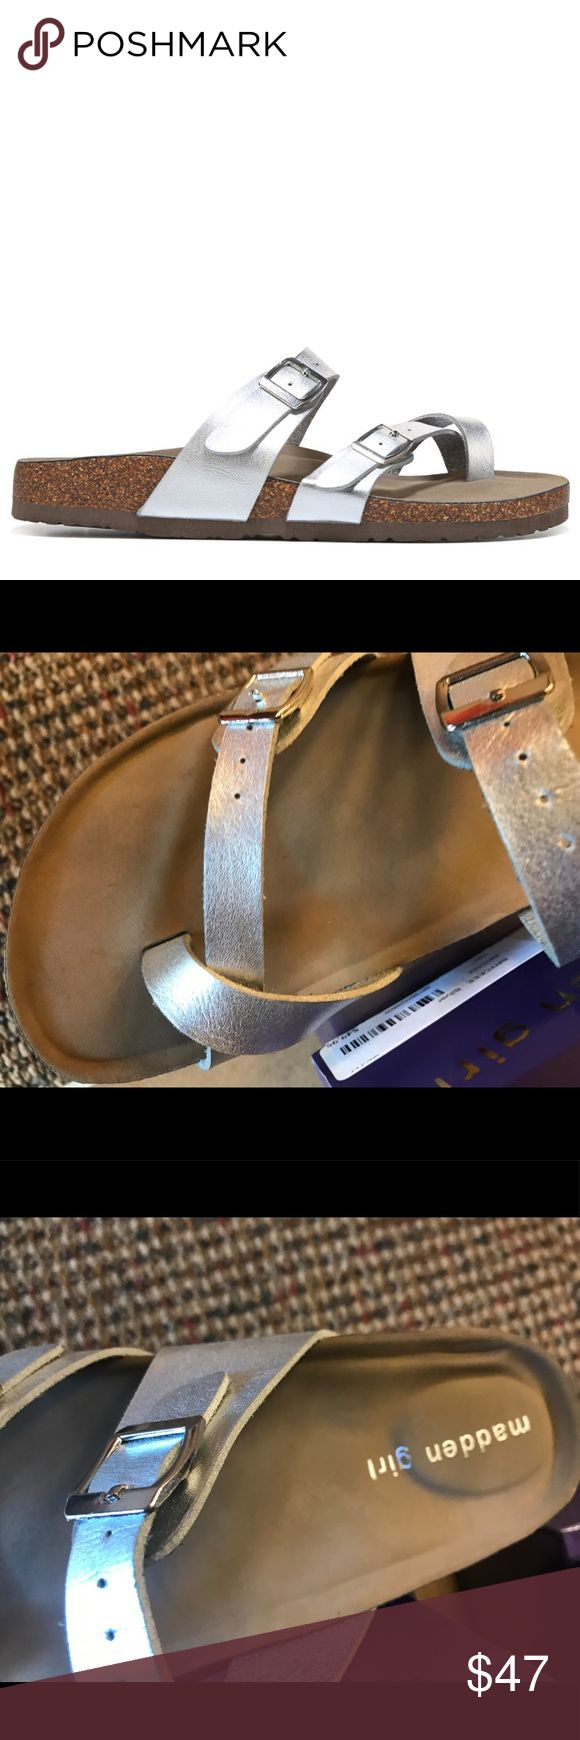 Madden Girl Brycee - Silver Madden Girl - Brycee - Silver - brand new - Birkenstock-like - more sizes available - less on Ⓜ️ e r c & ✔️inted - offers through offer button only Birkenstock Shoes Sandals